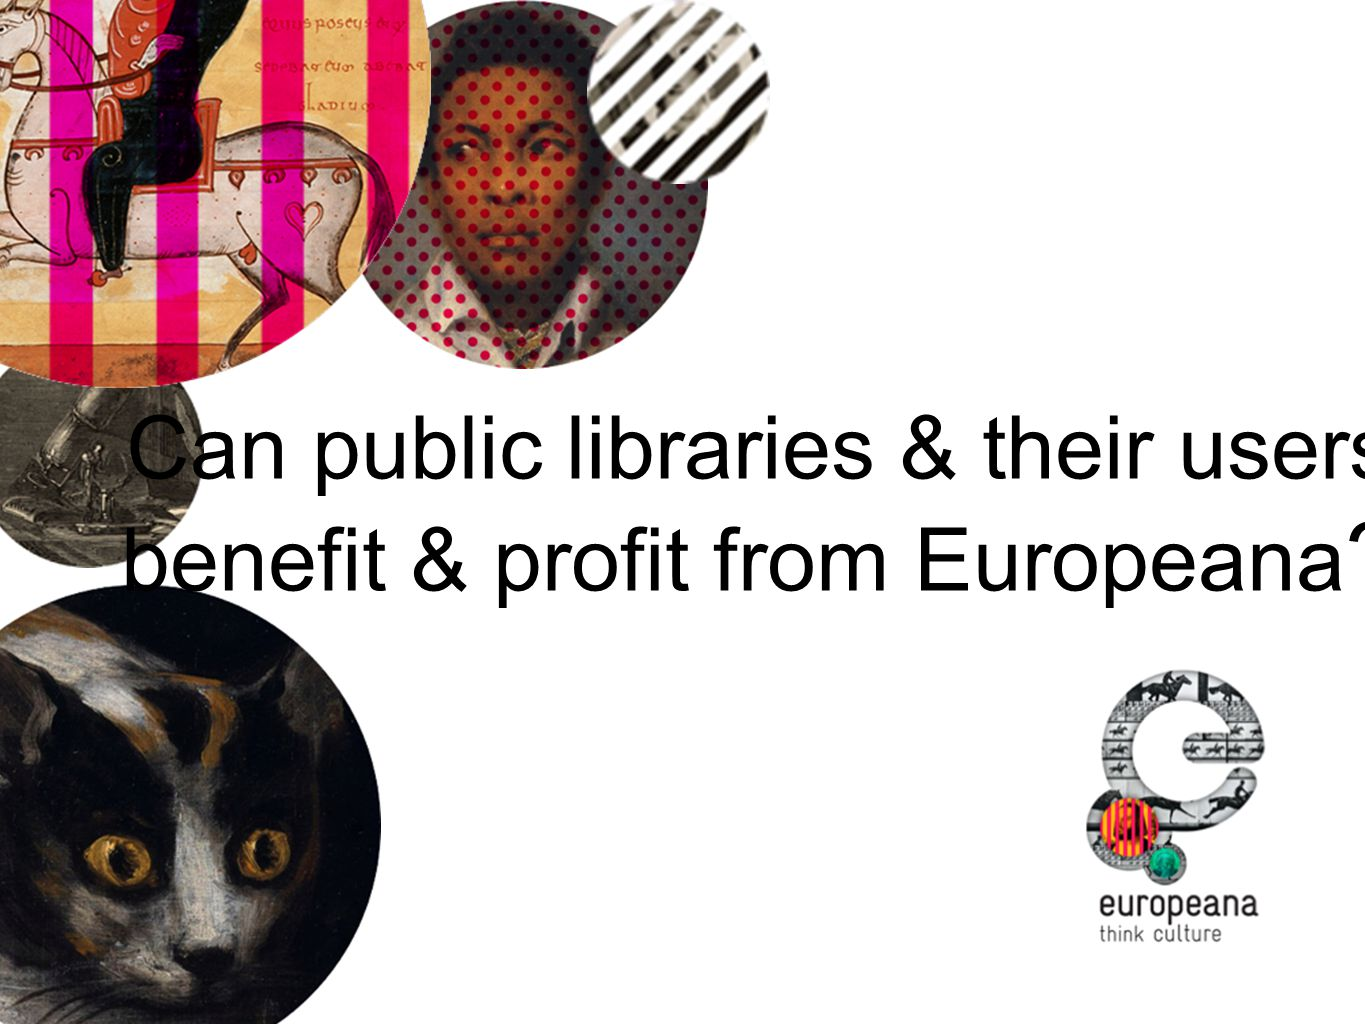 Agenda: Europeana Primary Users Collections Cooperation & Collaboration with Public Libraries